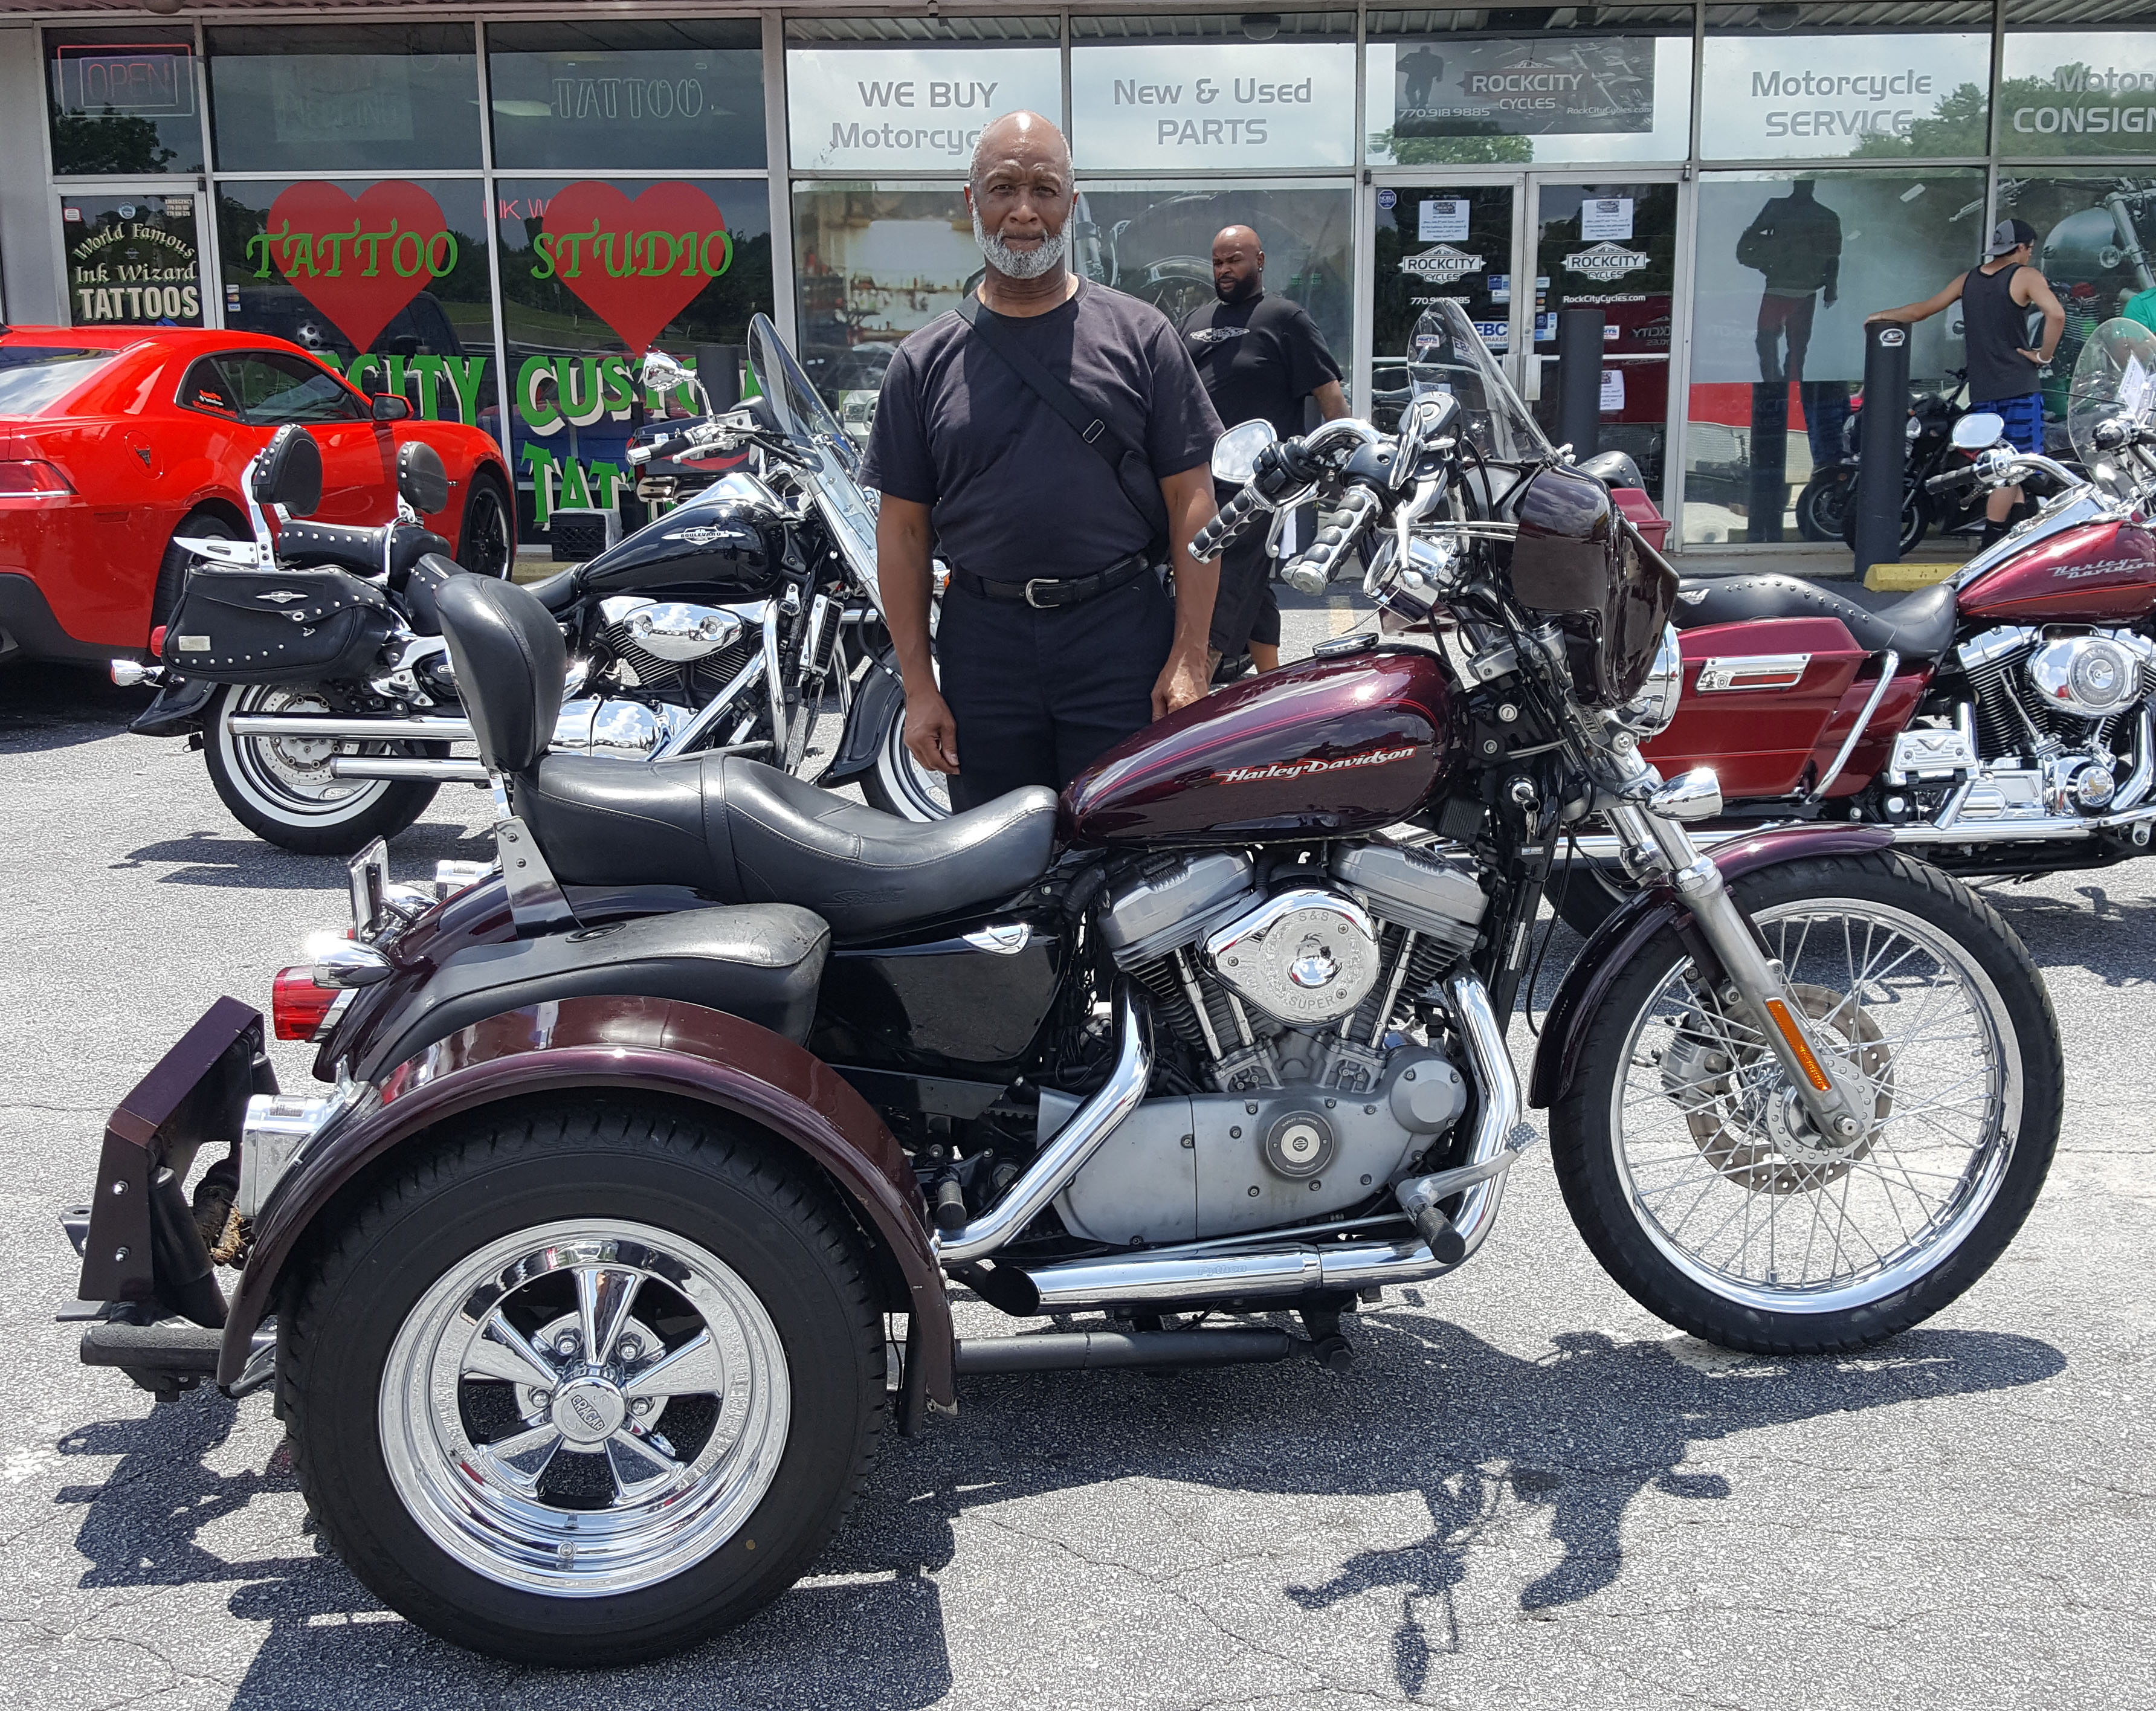 John S. with his 2005 Harley-Davidson XL883 Sportster Trike